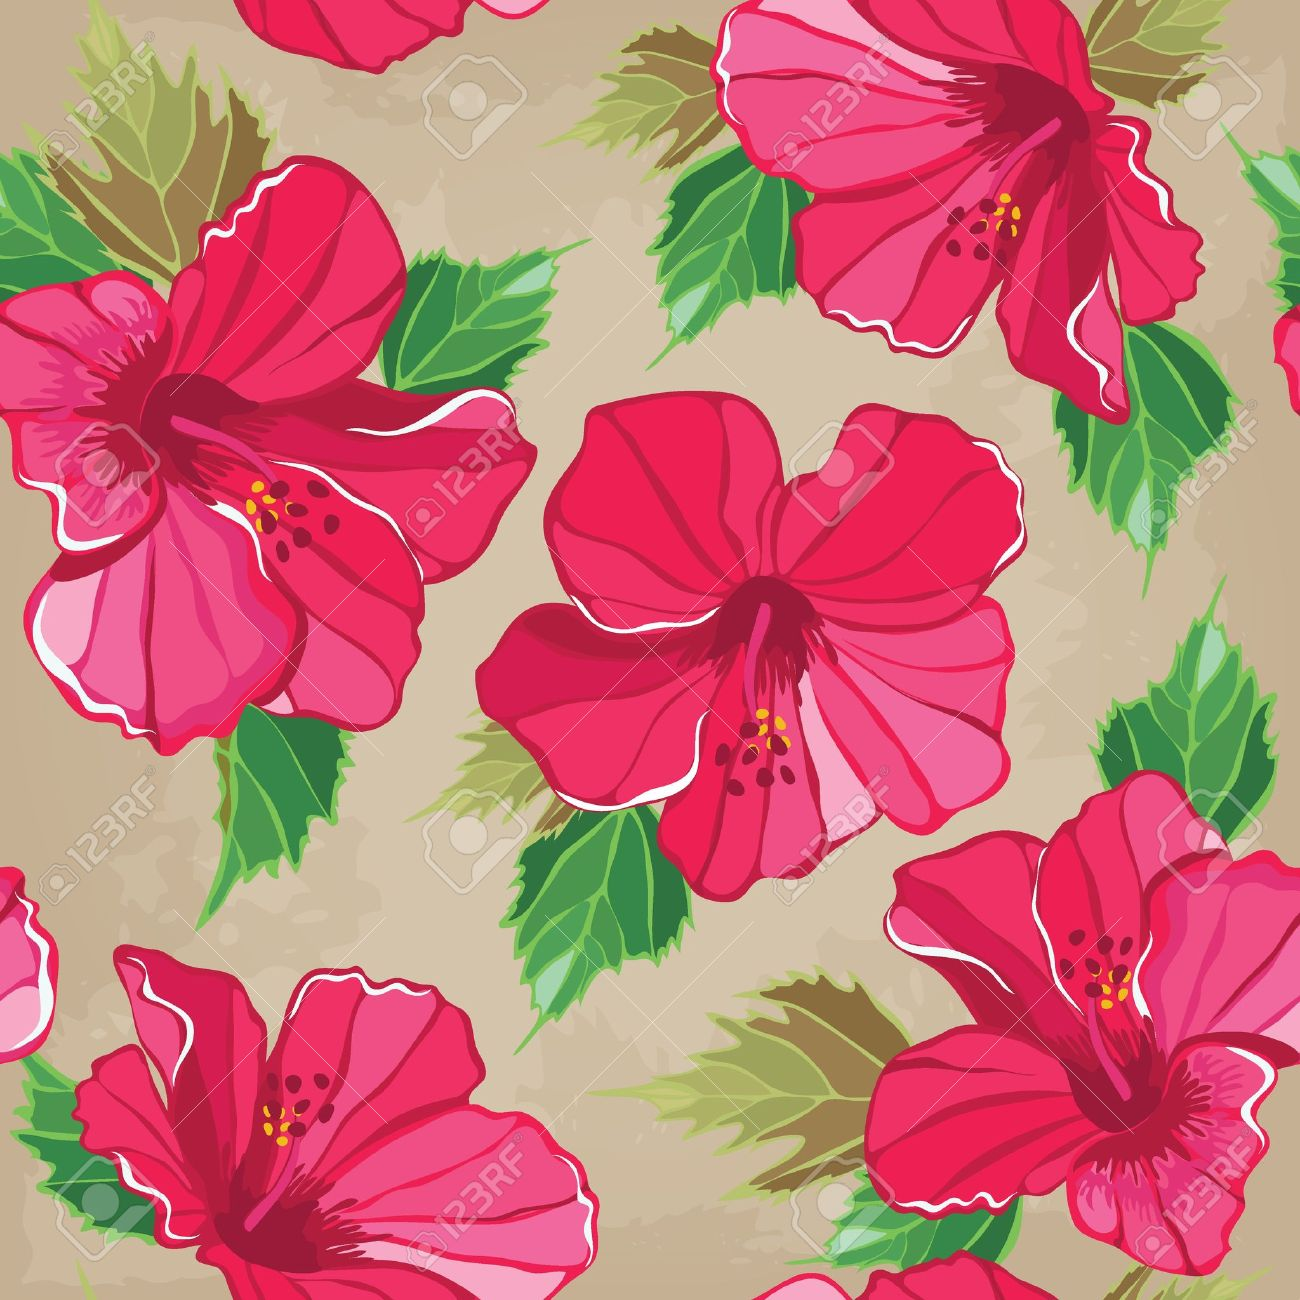 Floral seamless pattern with hibiscus hand drawing vector floral seamless pattern with hibiscus hand drawing vector illustration stock vector izmirmasajfo